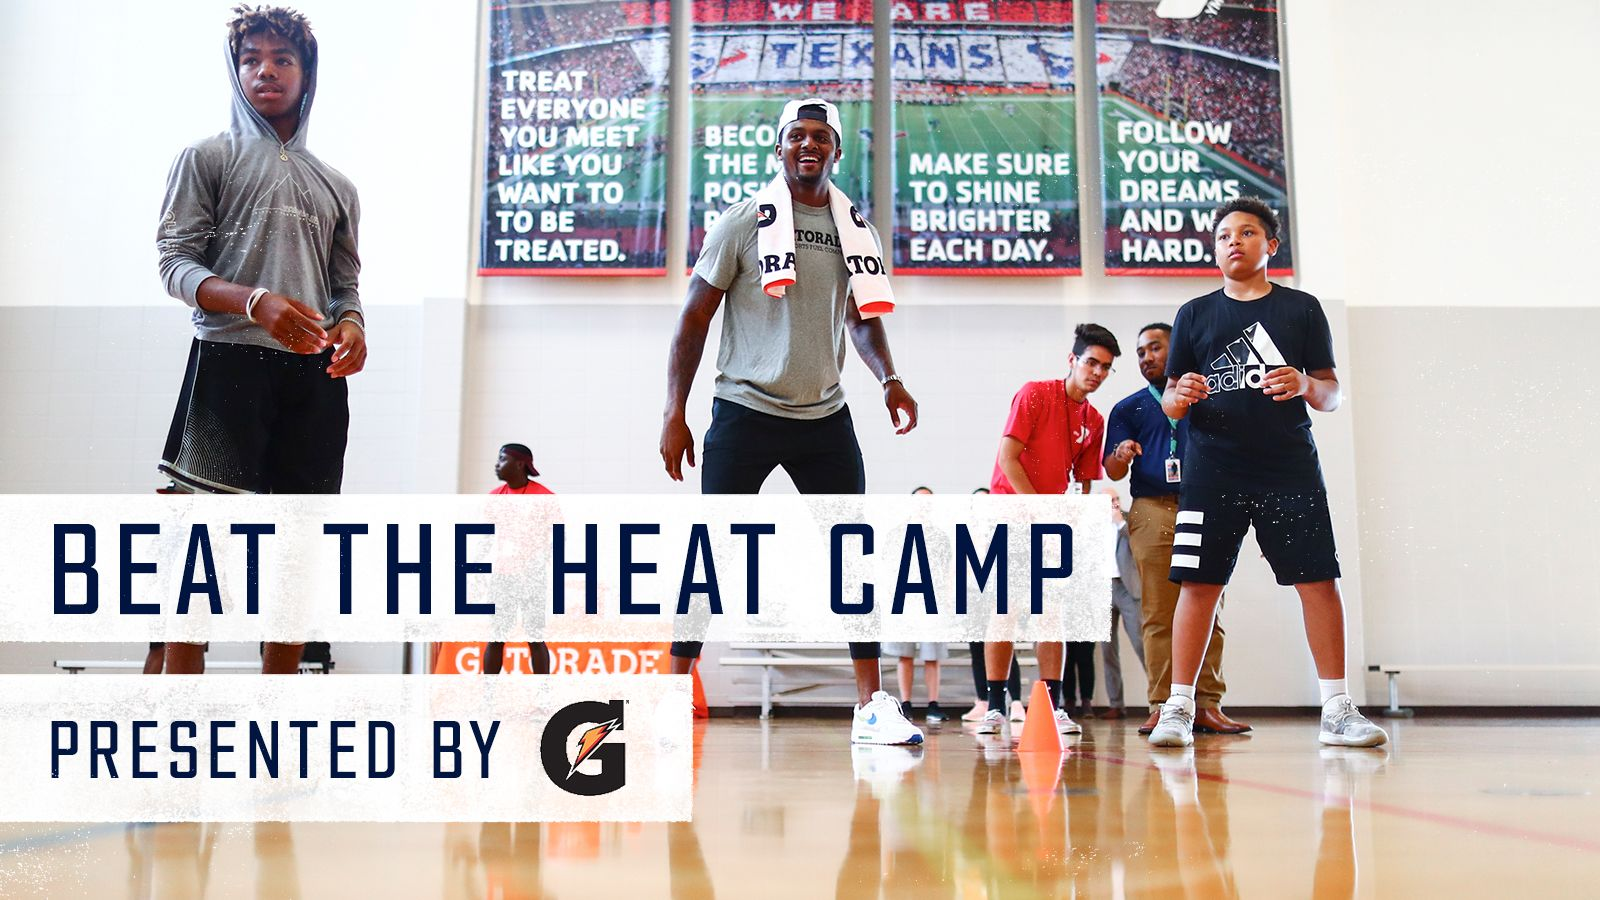 Beat the Heat Camp. Presented by Gatorade